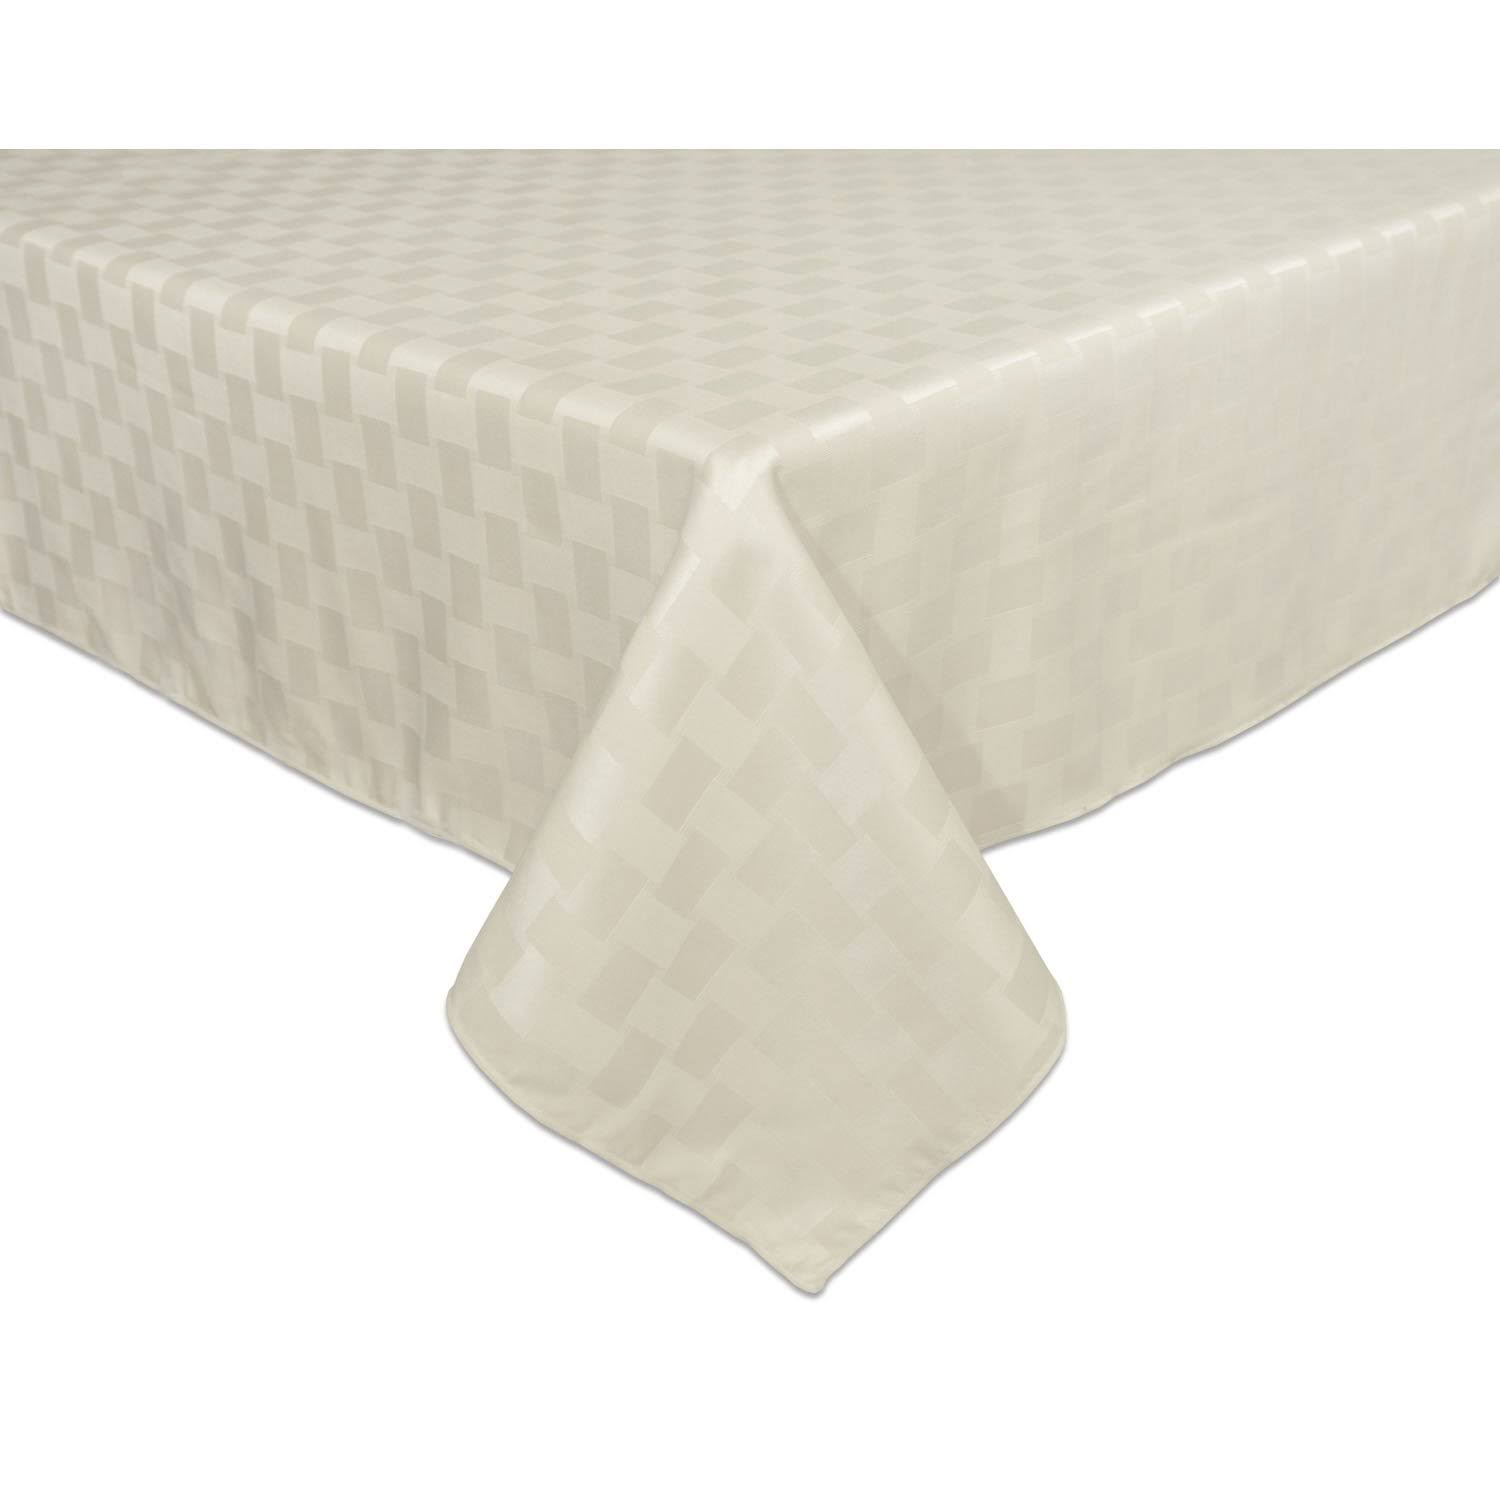 "Bardwil Reflections Spill Proof Oblong Rectangle Tablecloth - 60""x102"", Pearl"